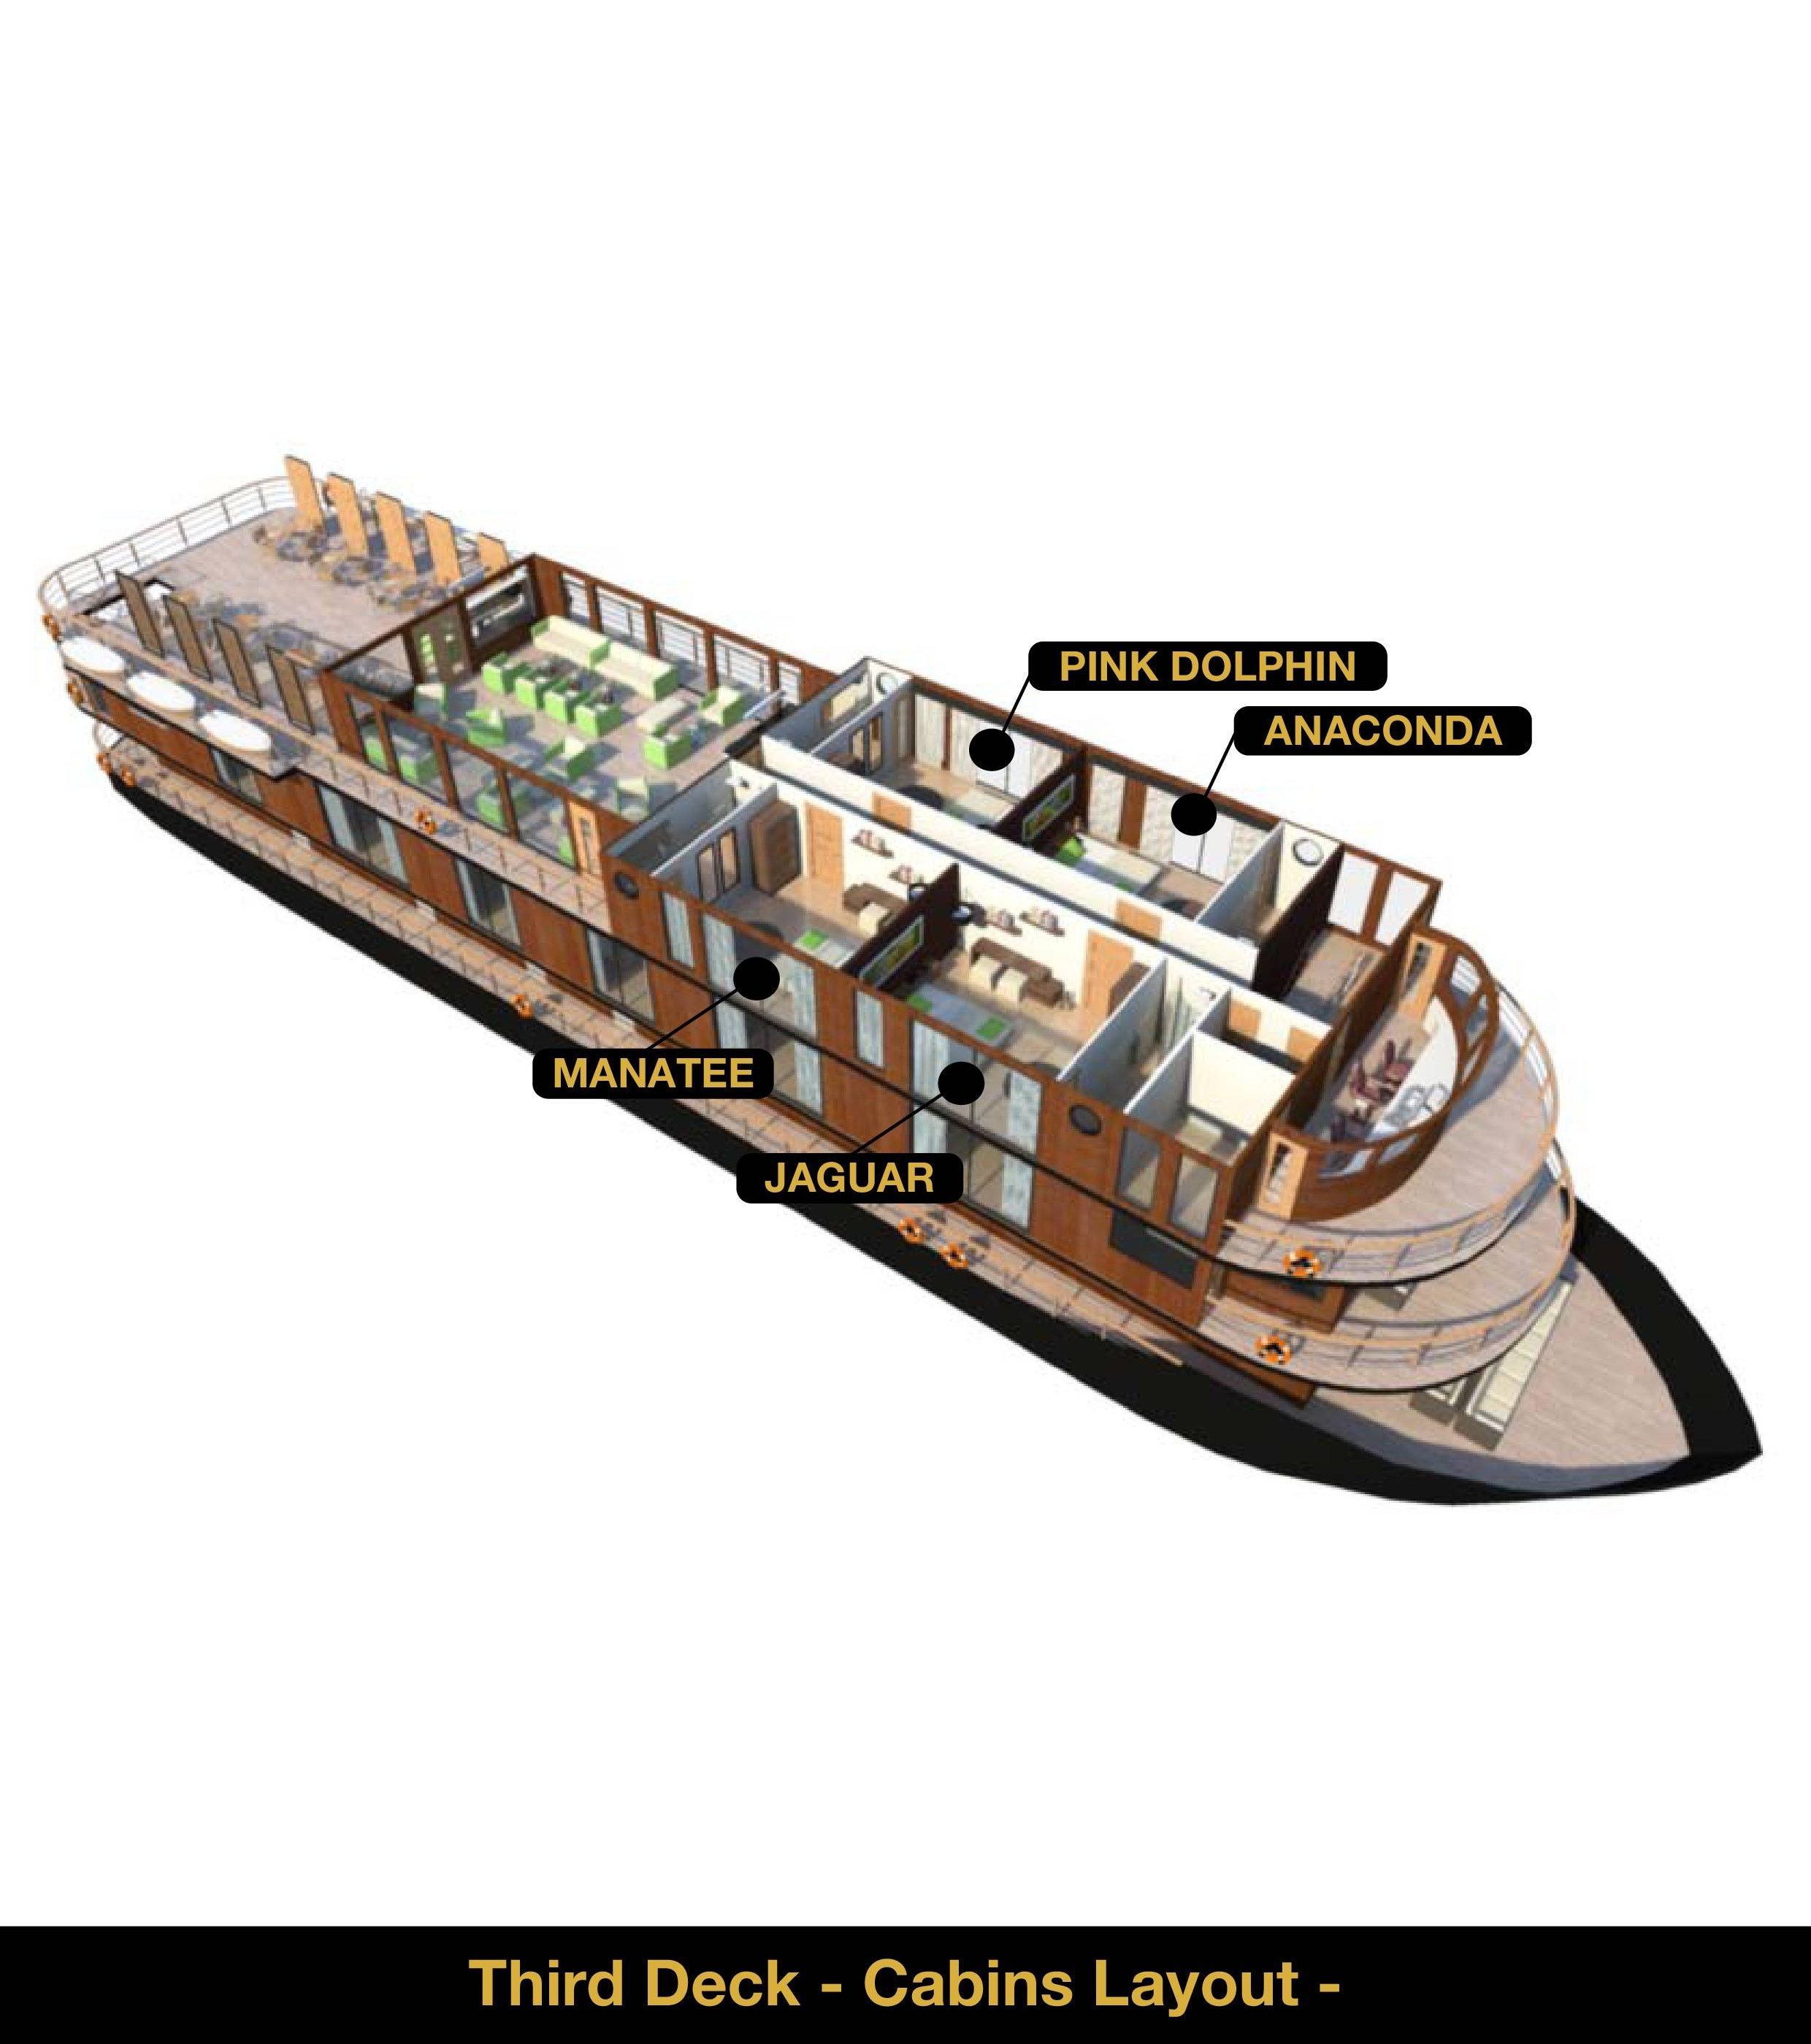 Anakonda Amazon Cruise - Deck 3 - 3D Plan